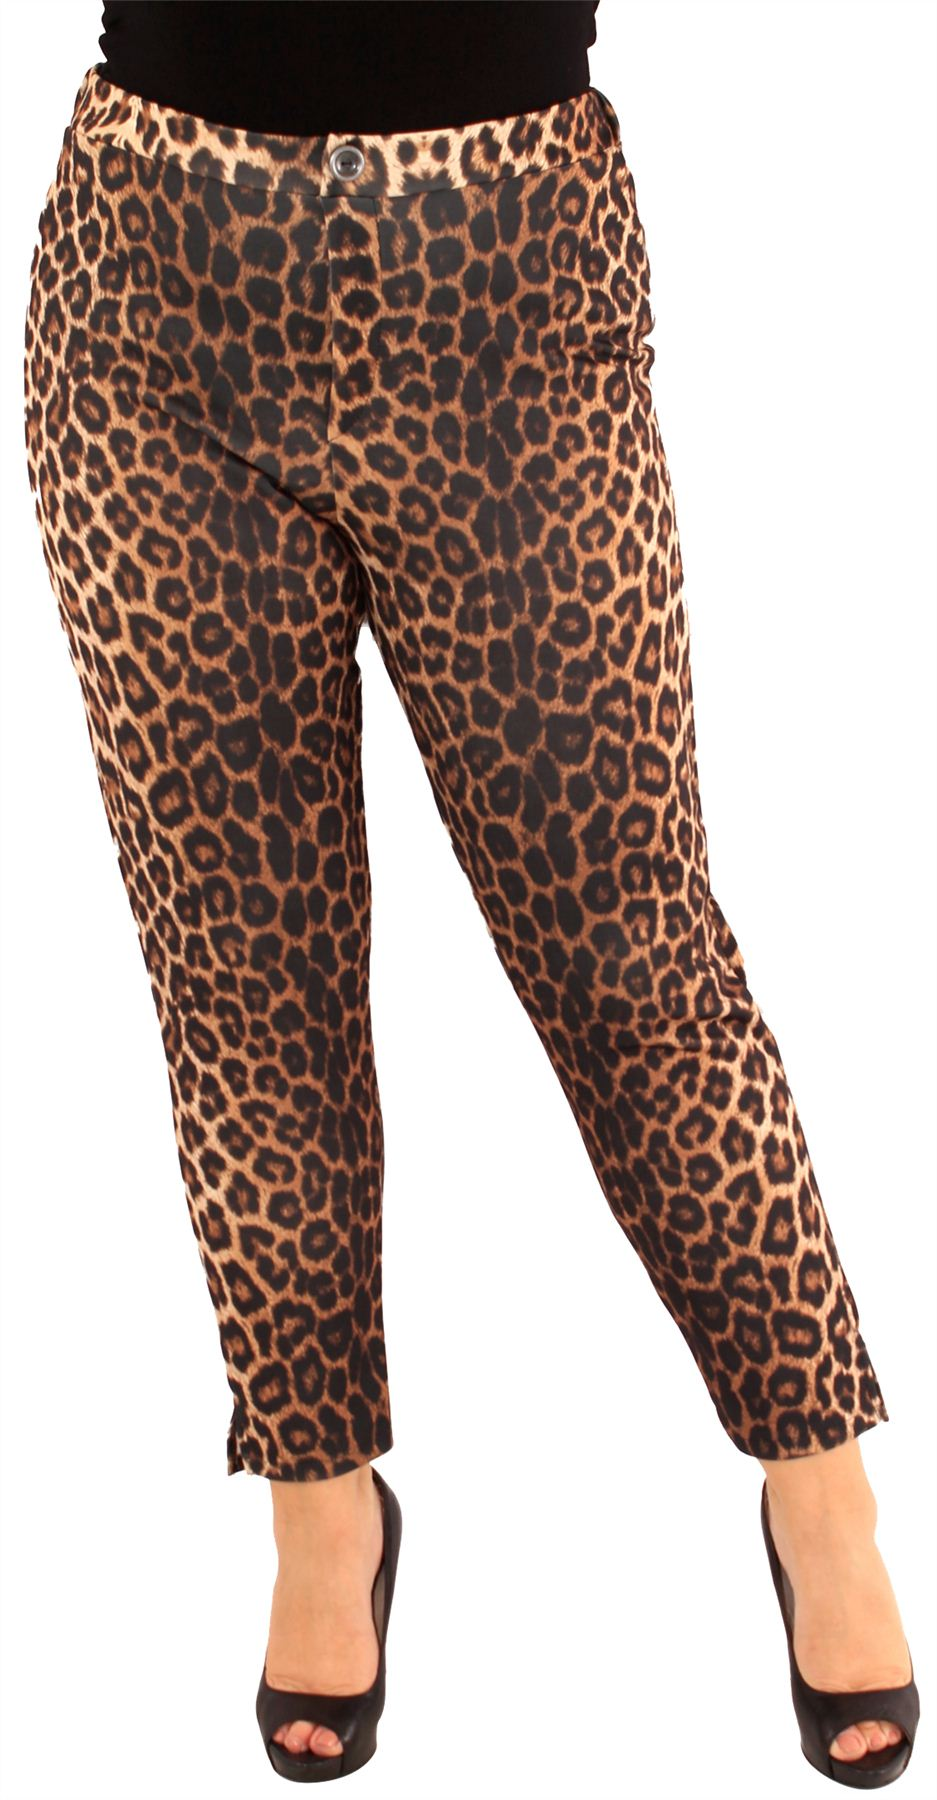 Find leopard print pants from a vast selection of Diverse Women's Clothing. Get great deals on eBay!